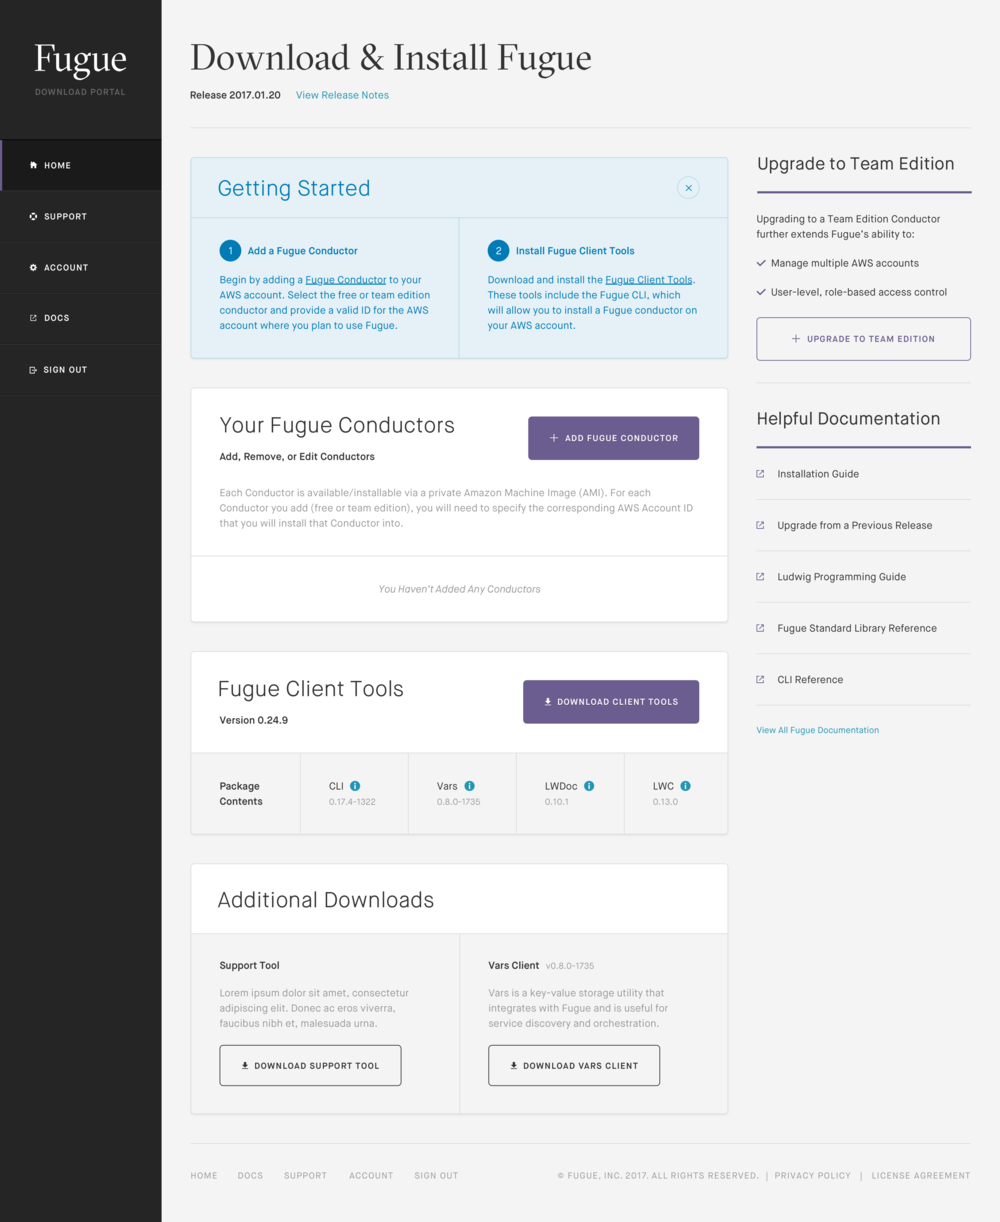 """Fugue's Download Portal allowed users to signup, configure and download Fugue's """"Client Tools"""""""